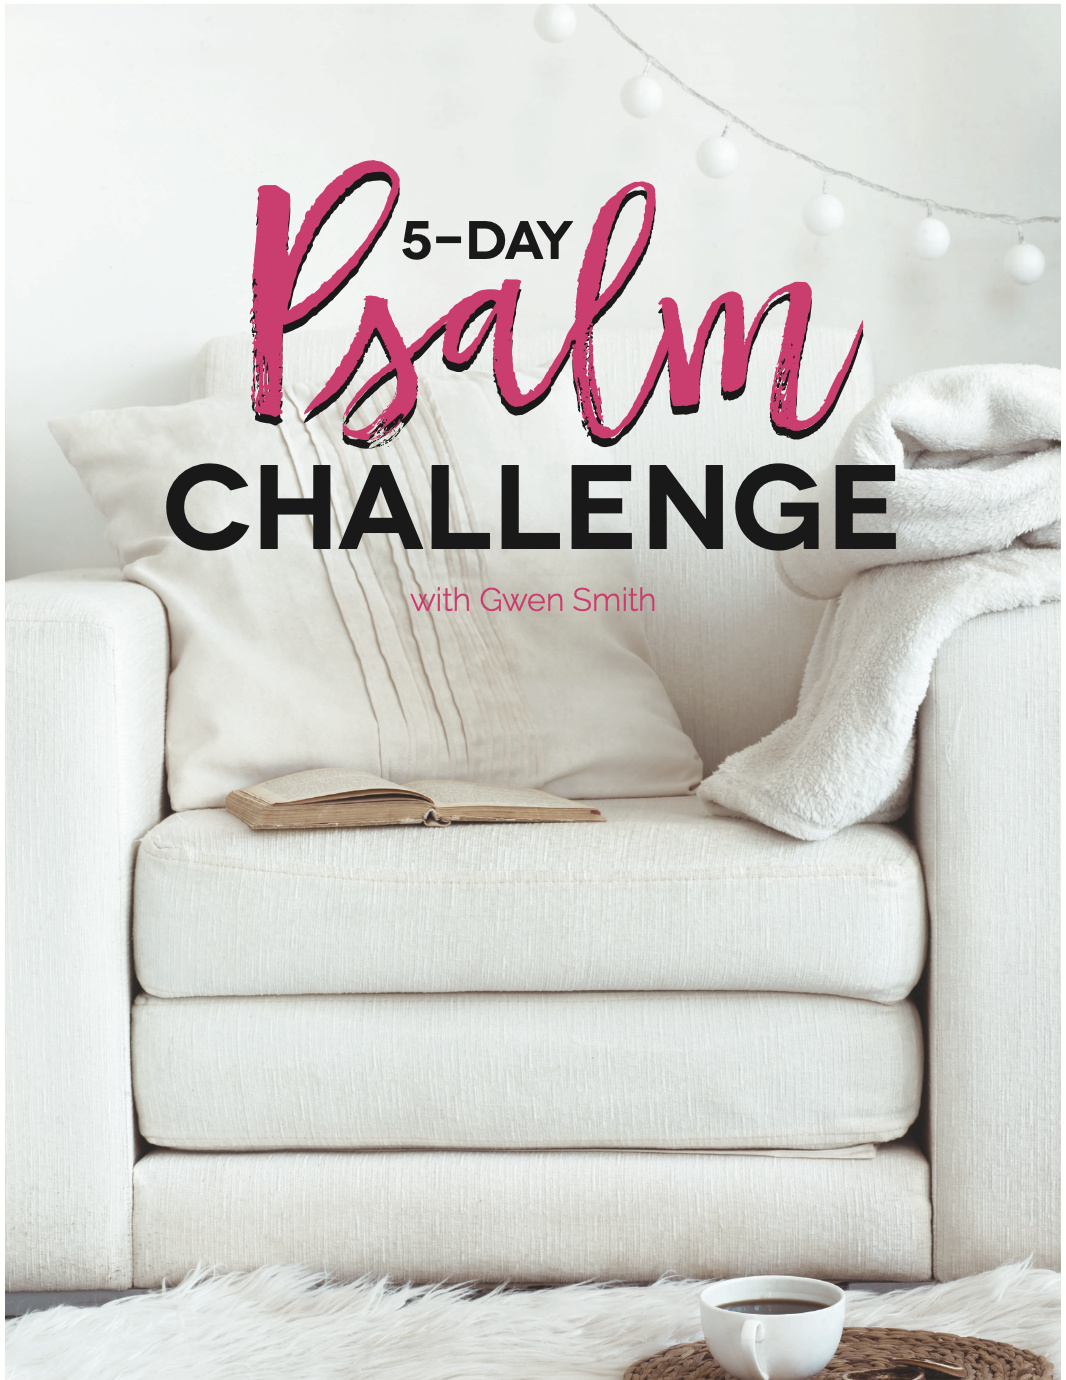 Free 5-Day Psalm Challenge with Gwen Smith